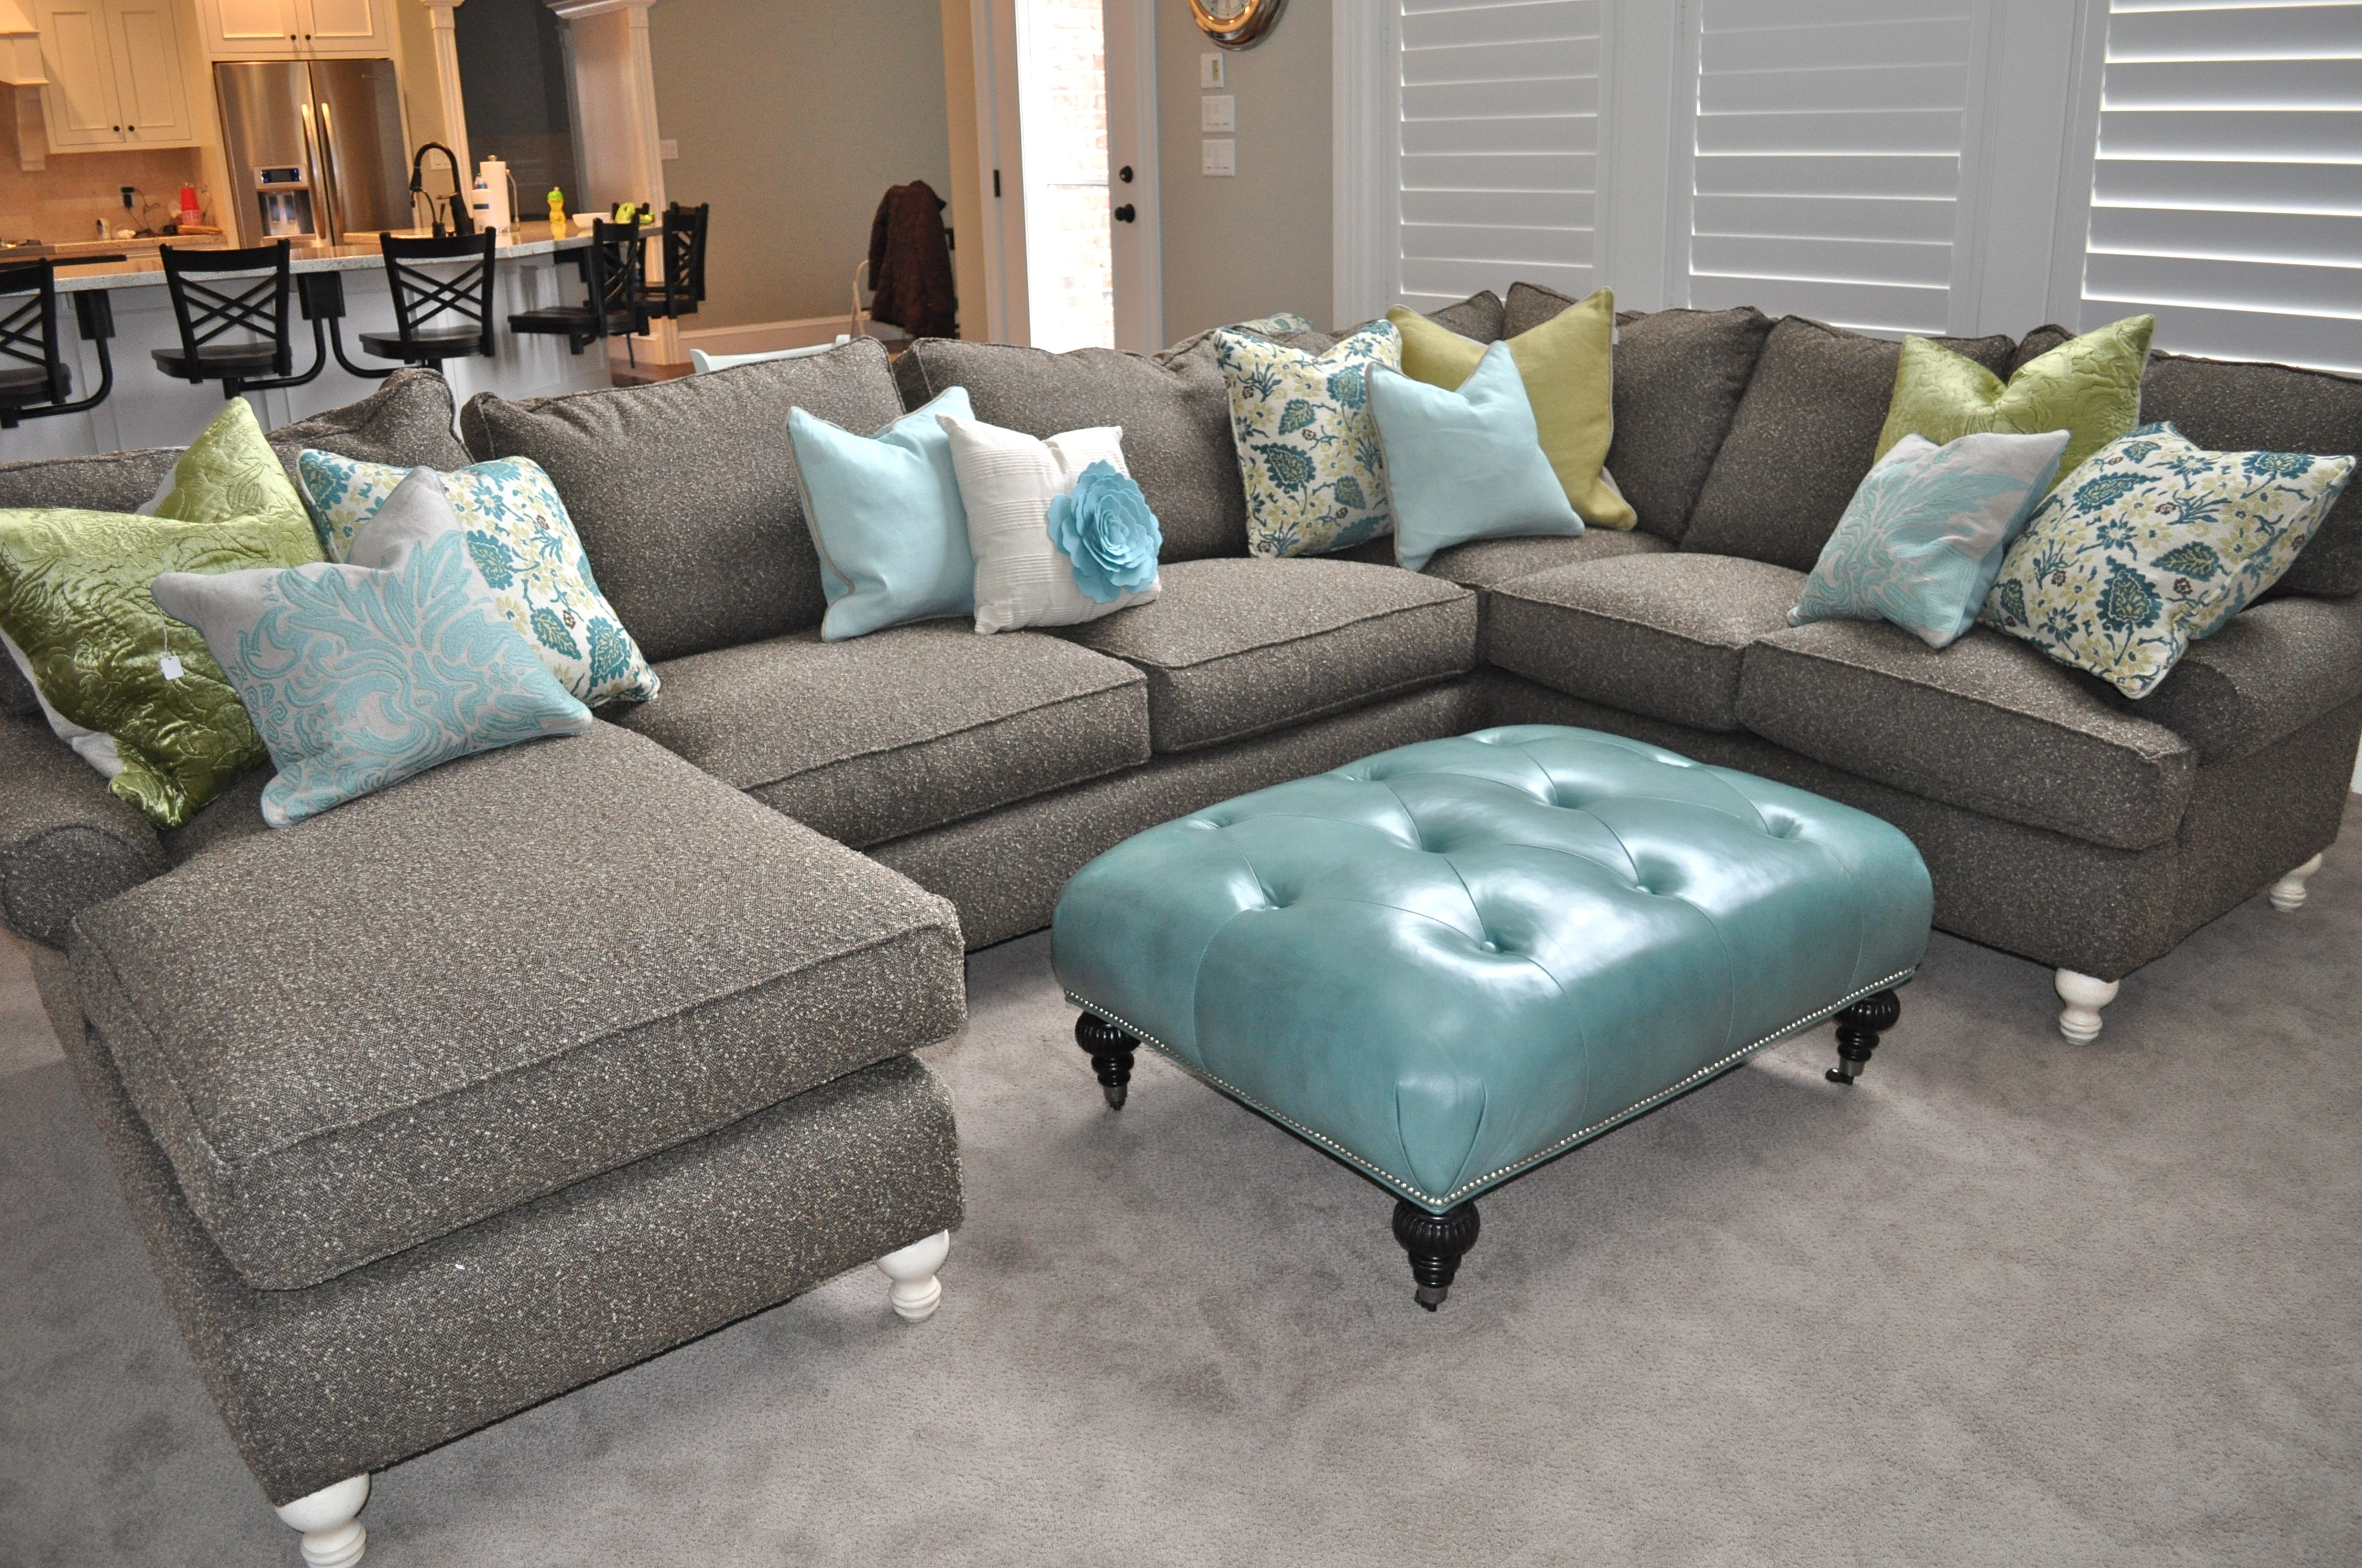 Fancy Green Sectional Sofa With Chaise 52 With Additional Faux With Green Sectional Sofas With Chaise (Image 4 of 10)